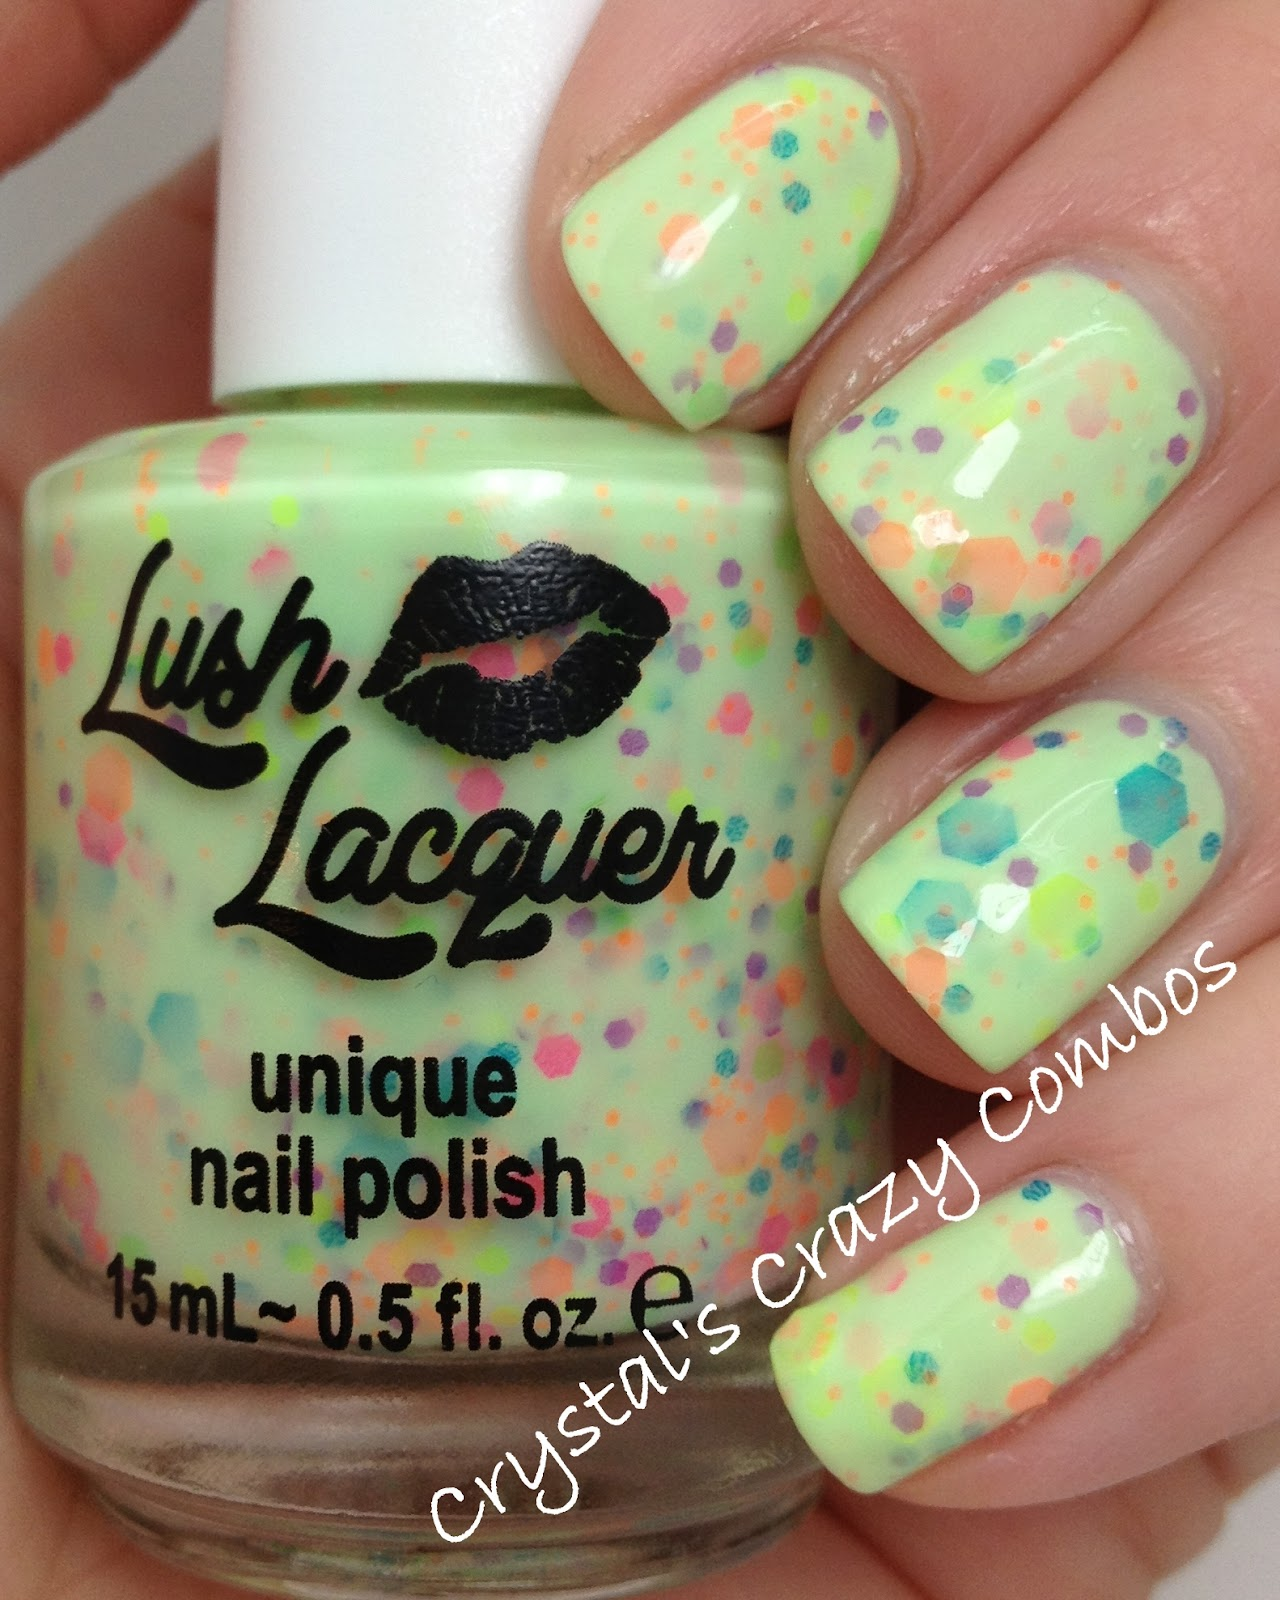 Crystal\'s Crazy Combos: Lush Lacquer - Neon Collection!